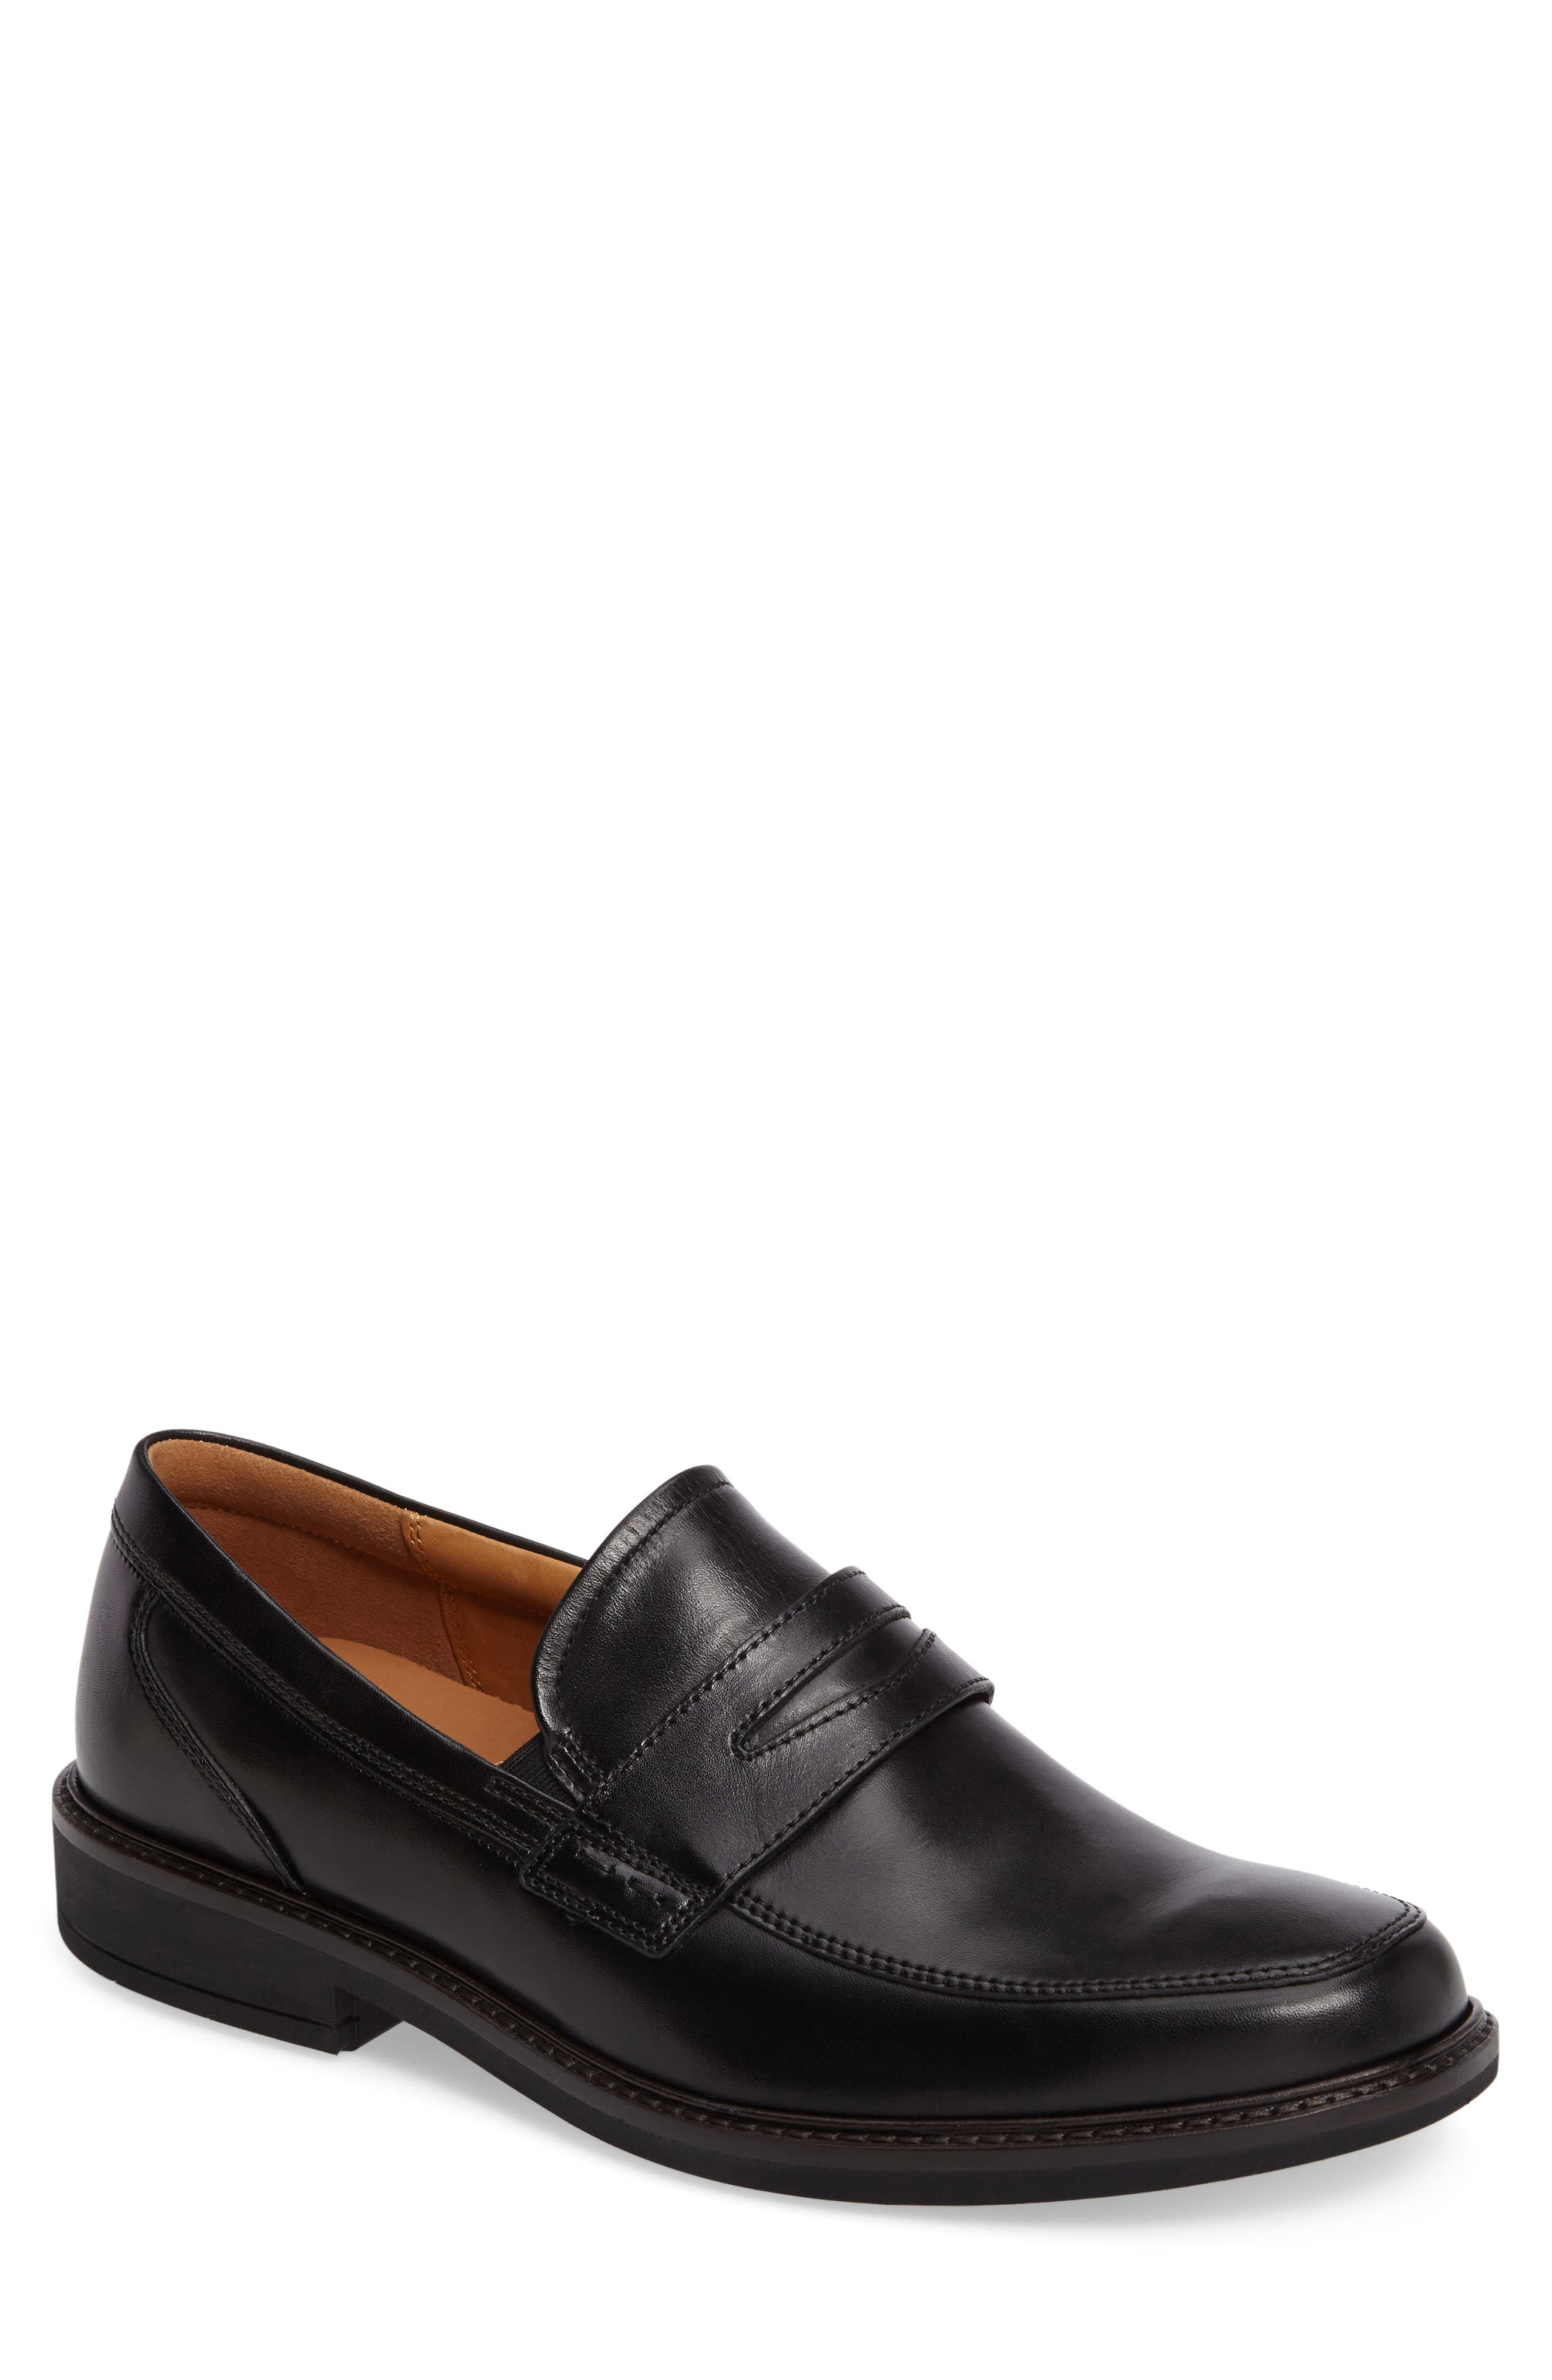 Holton Penny Loafer,                         Main,                         color, 001